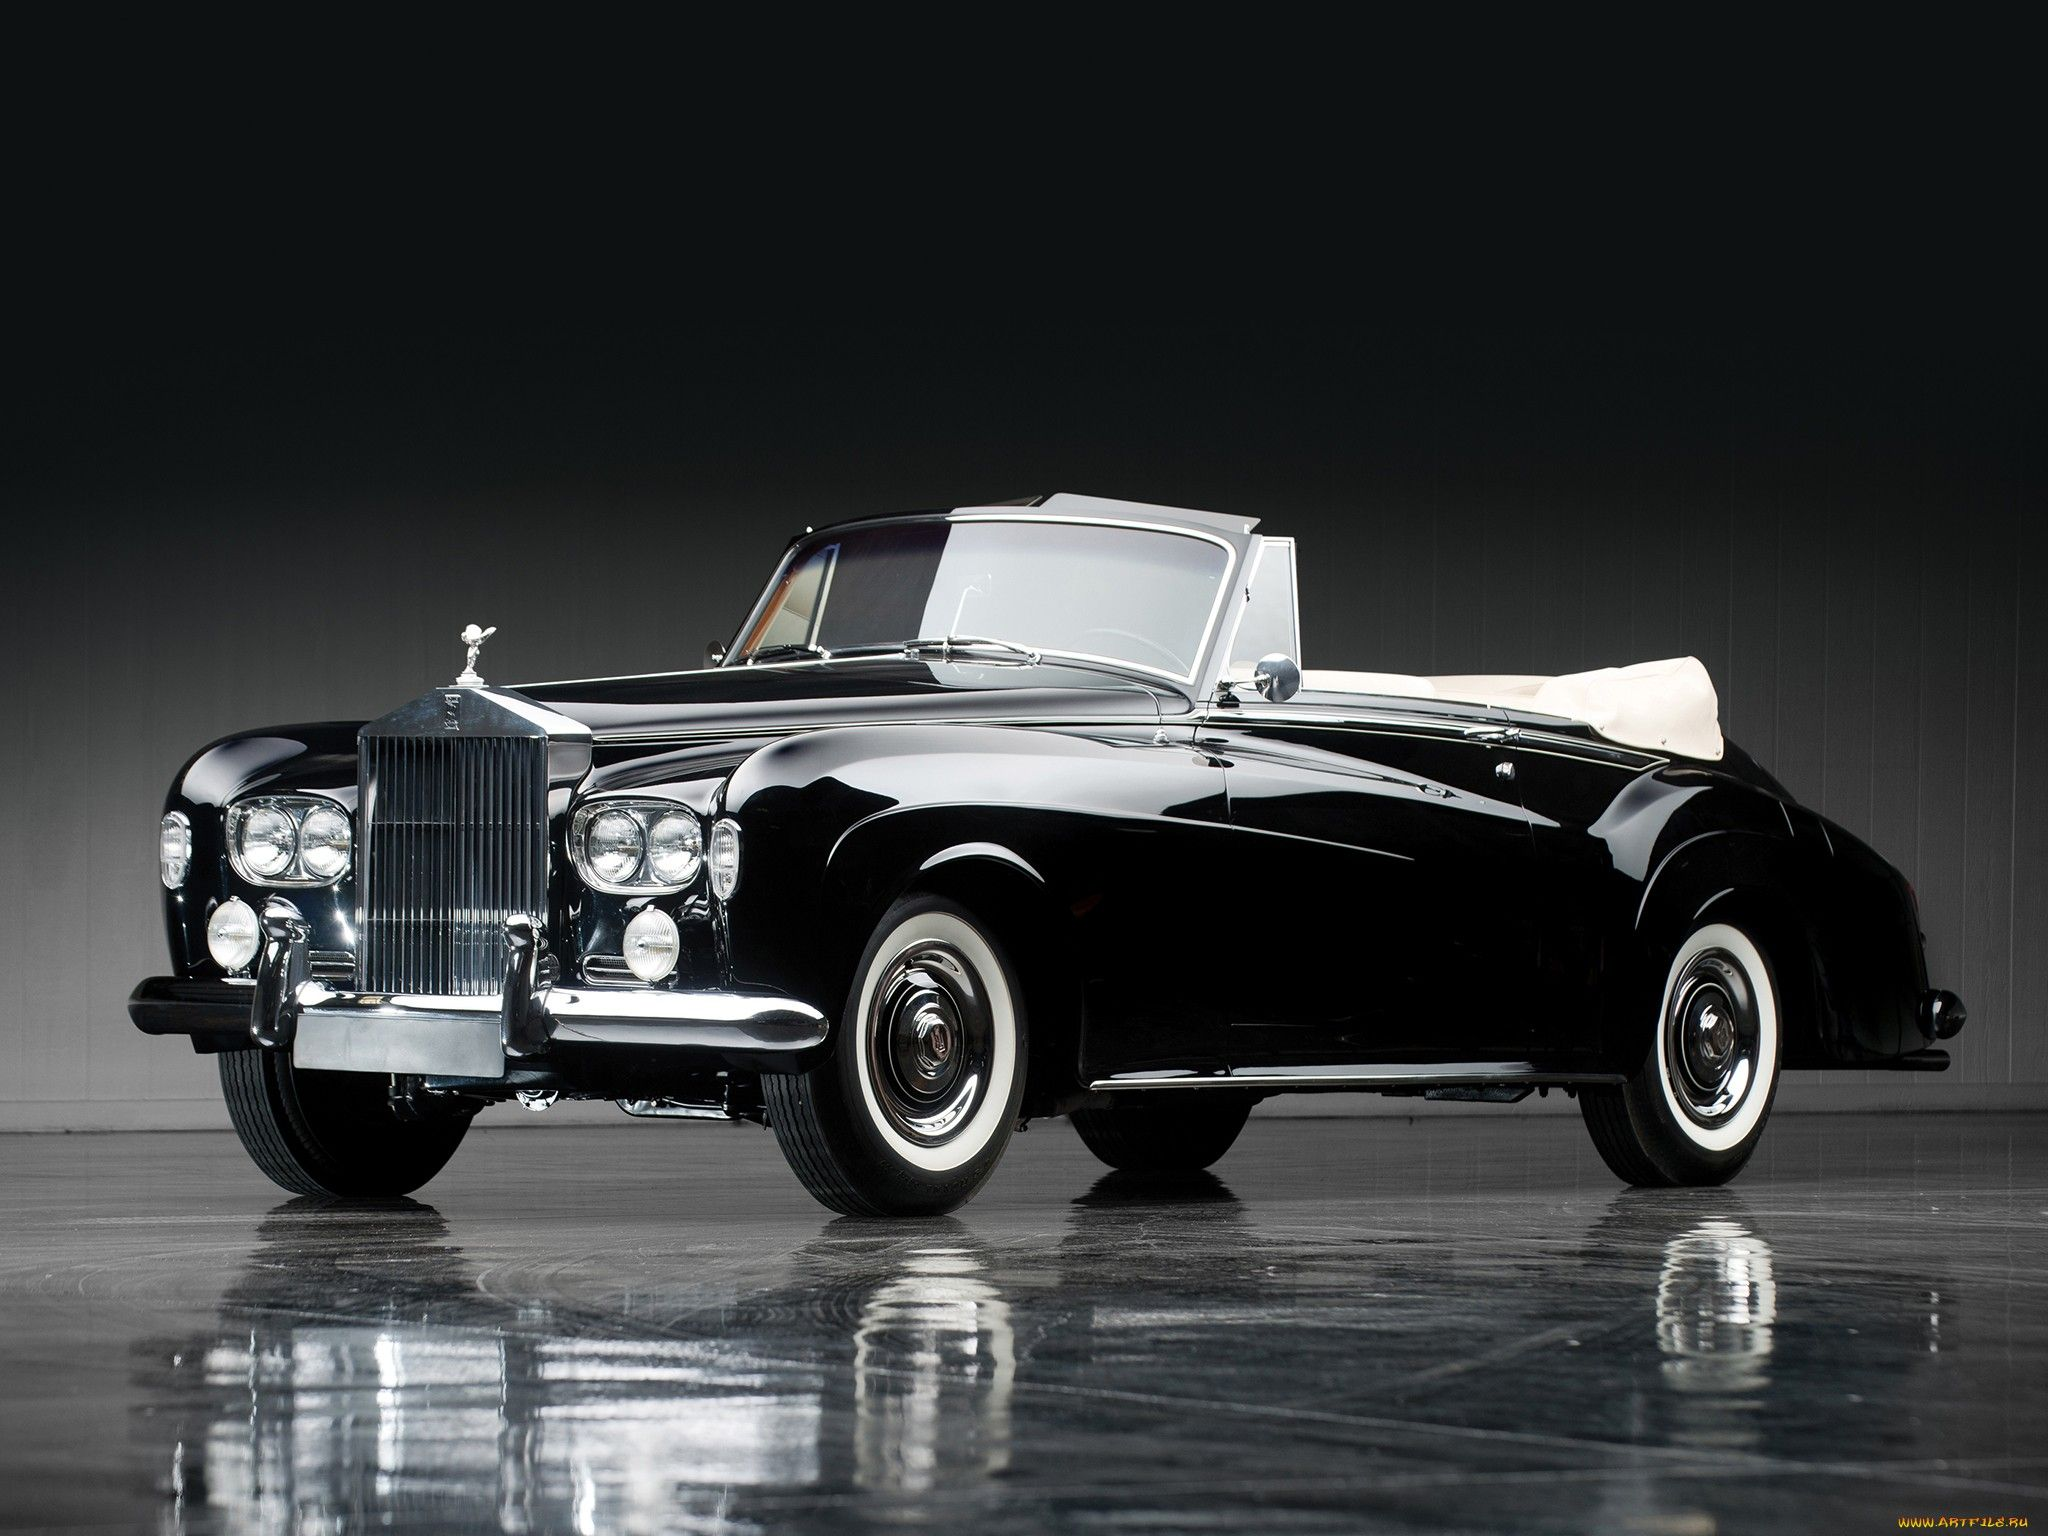 Classic Rolls Royce Wallpaper Images With High Resolution 2048x1536 Px 38745 KB